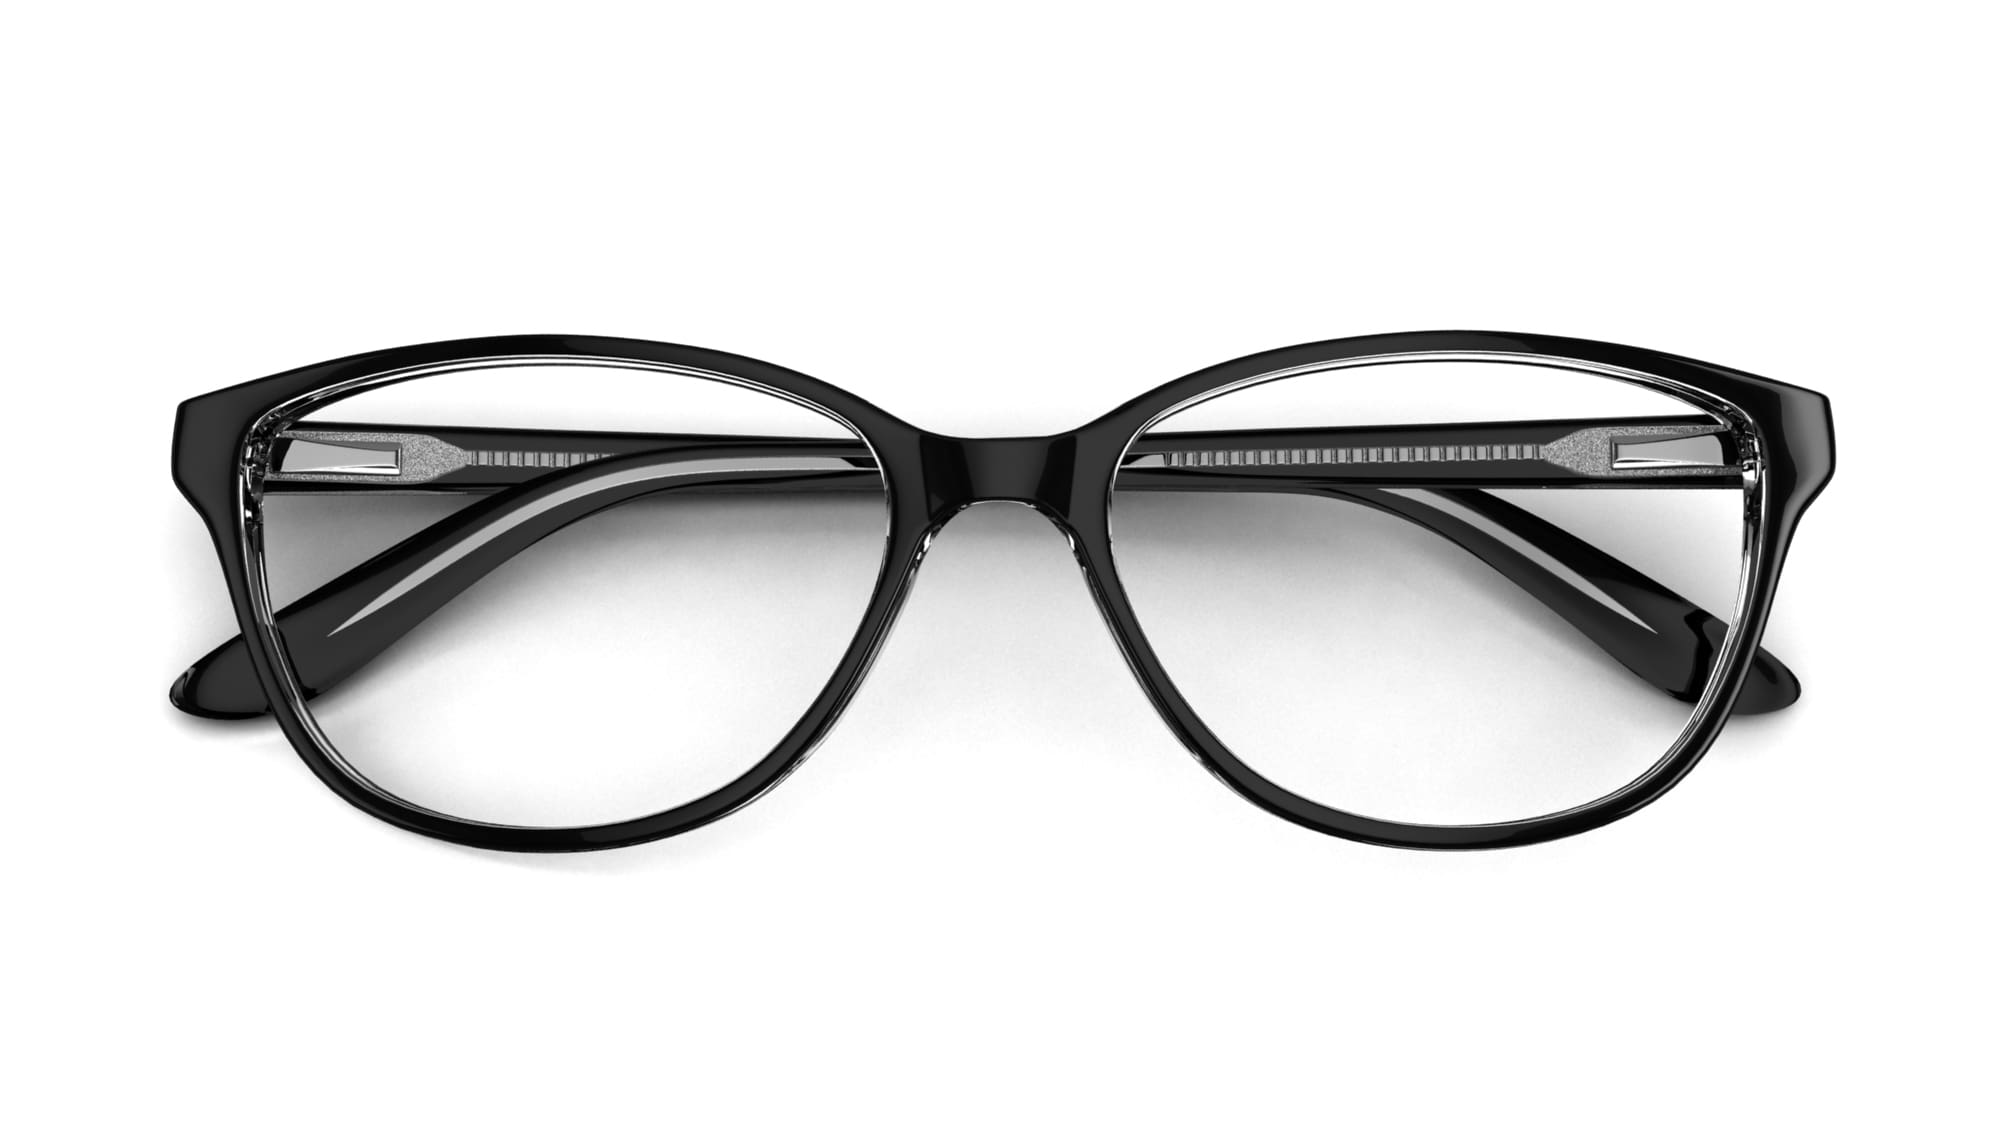 DELORES Glasses by Specsavers